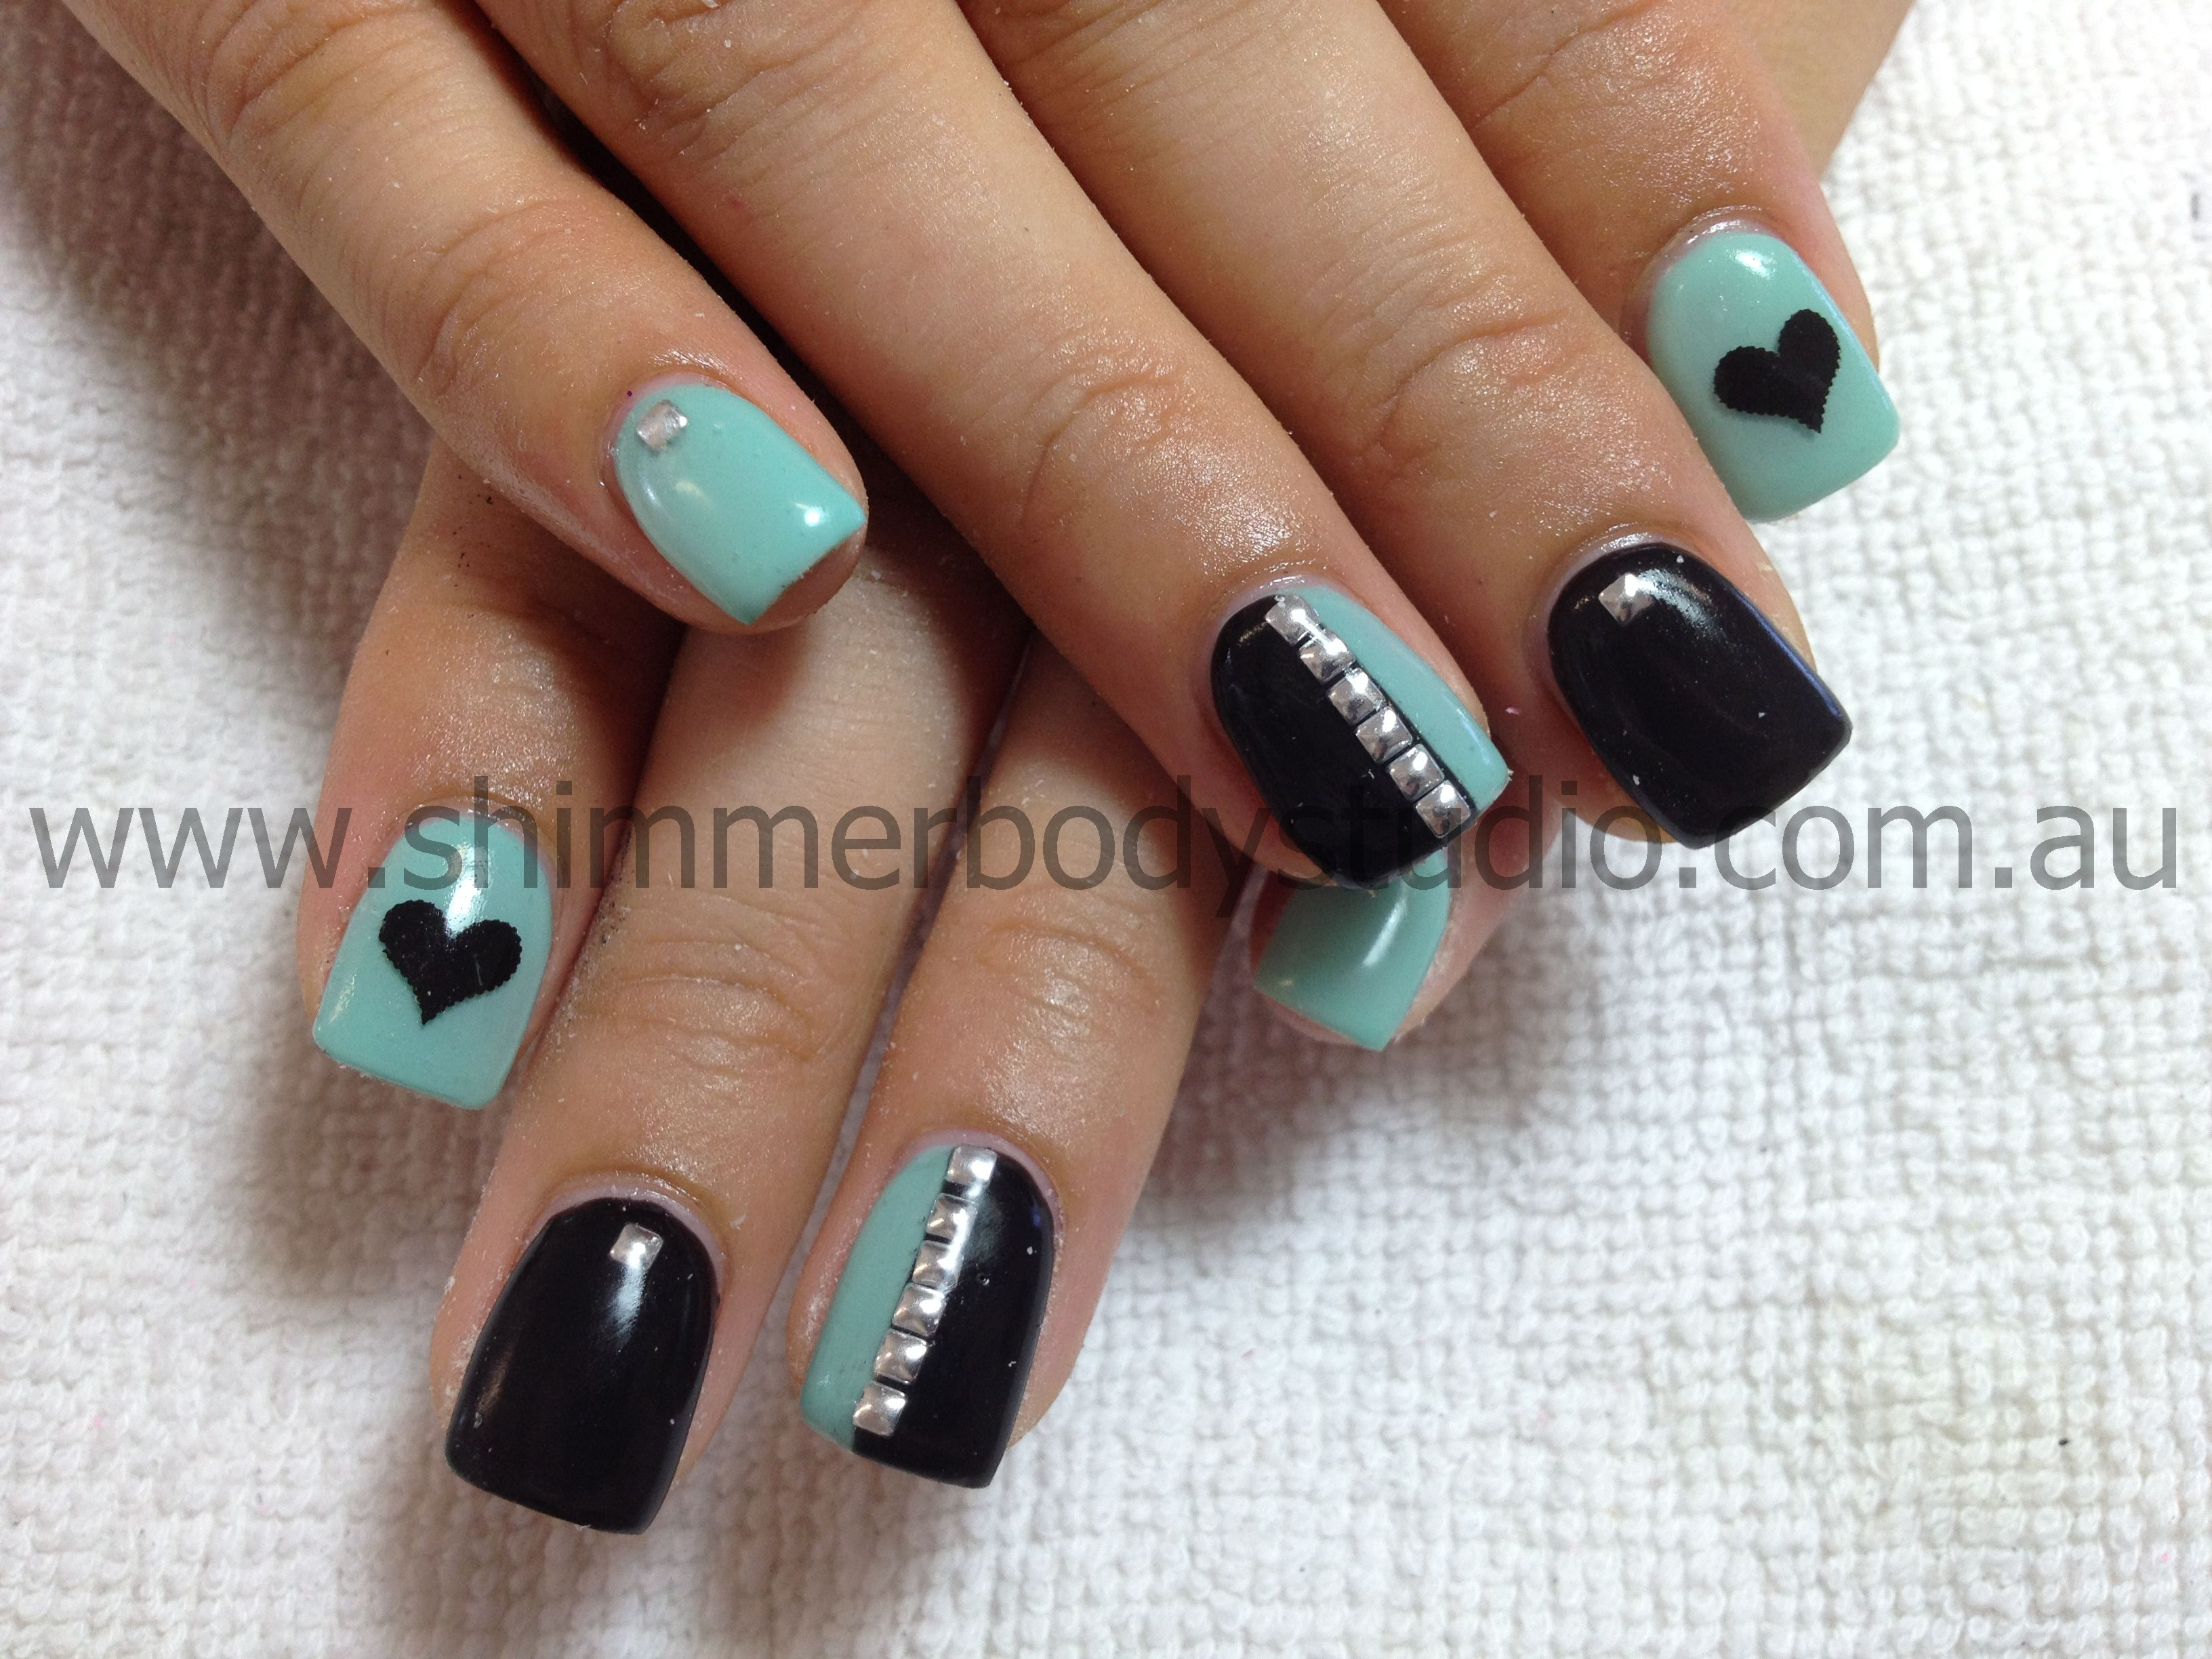 Gel Nails Colour Nails Black Nails Turqoise Nails Studs Silver